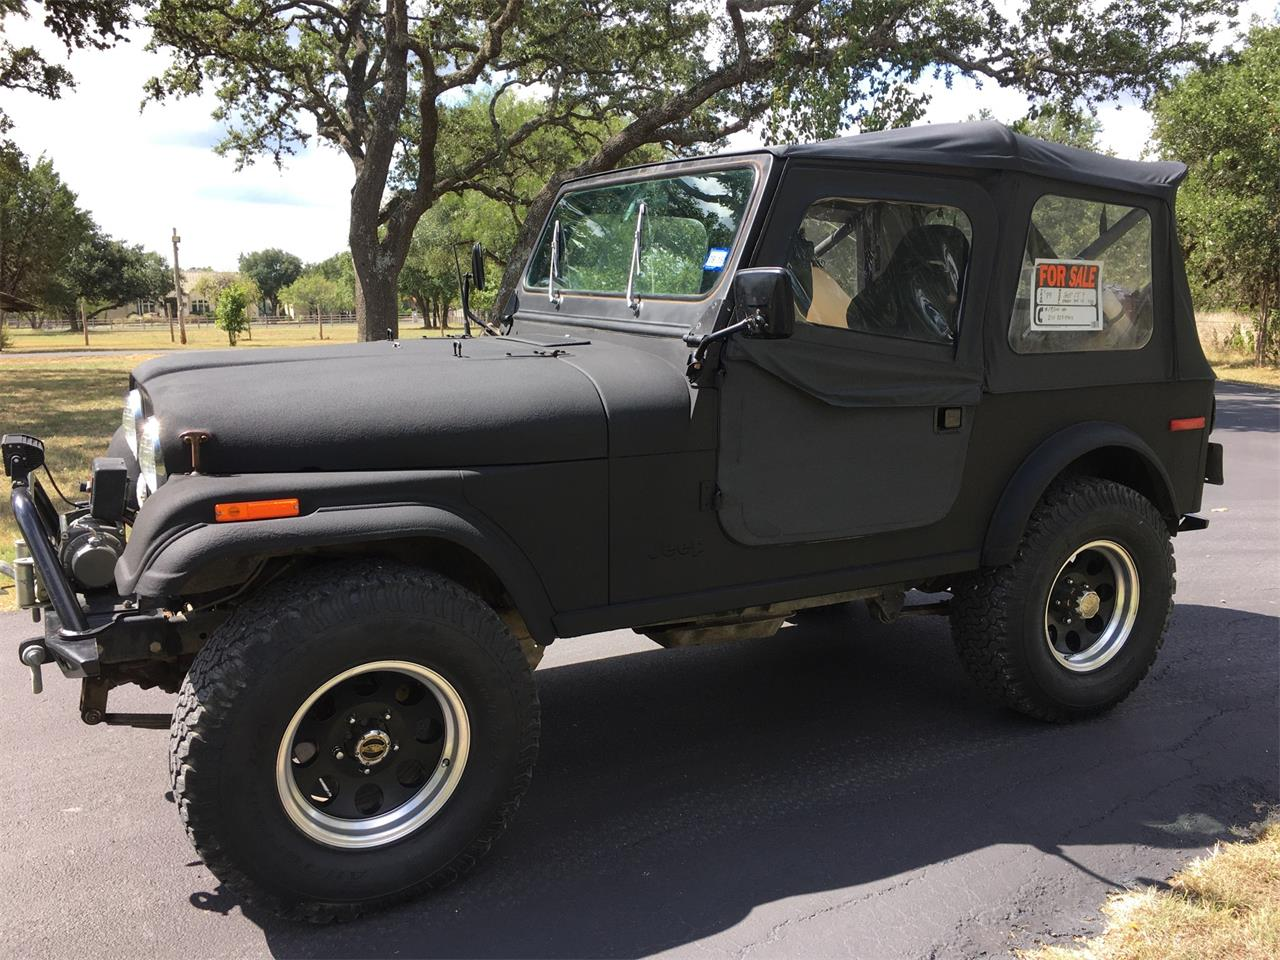 for sale: 1979 jeep cj7 in boerne, texas https://photos.classiccars.com/cc-temp/listing/130/2452/18811181-1979-jeep-renegade-std.jpg